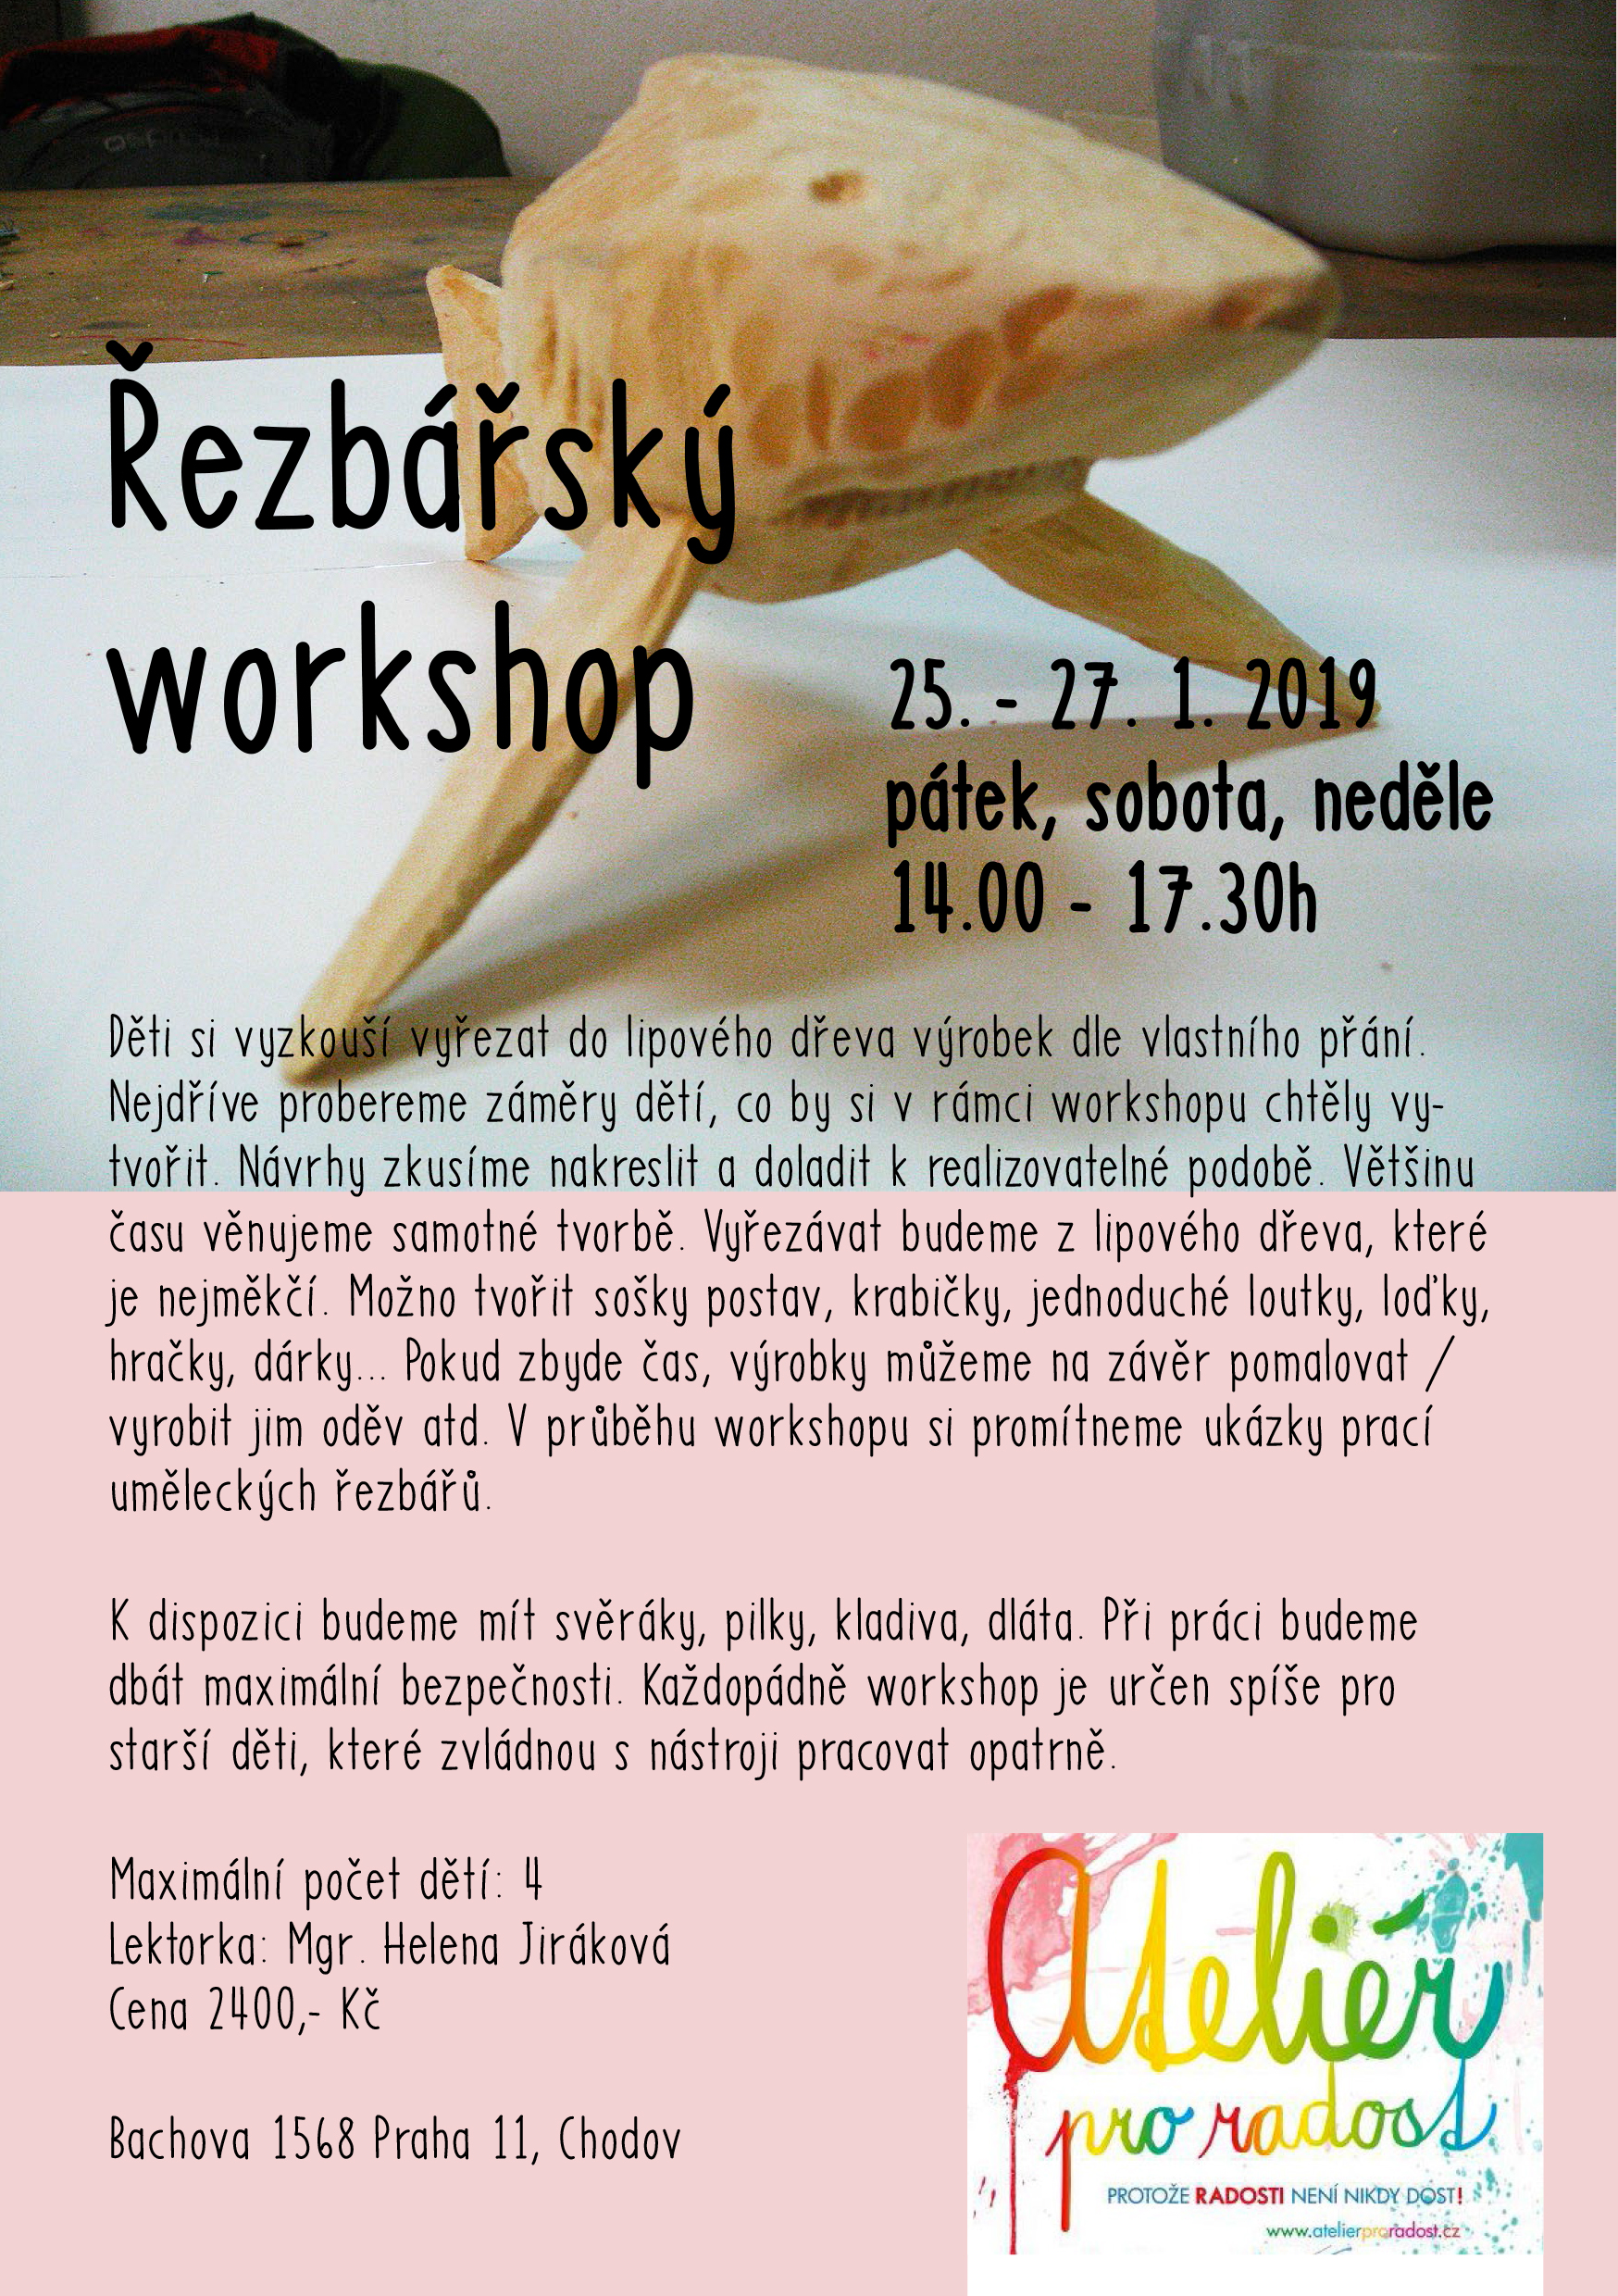 Rezbarsky_workshop_leden2019.jpg